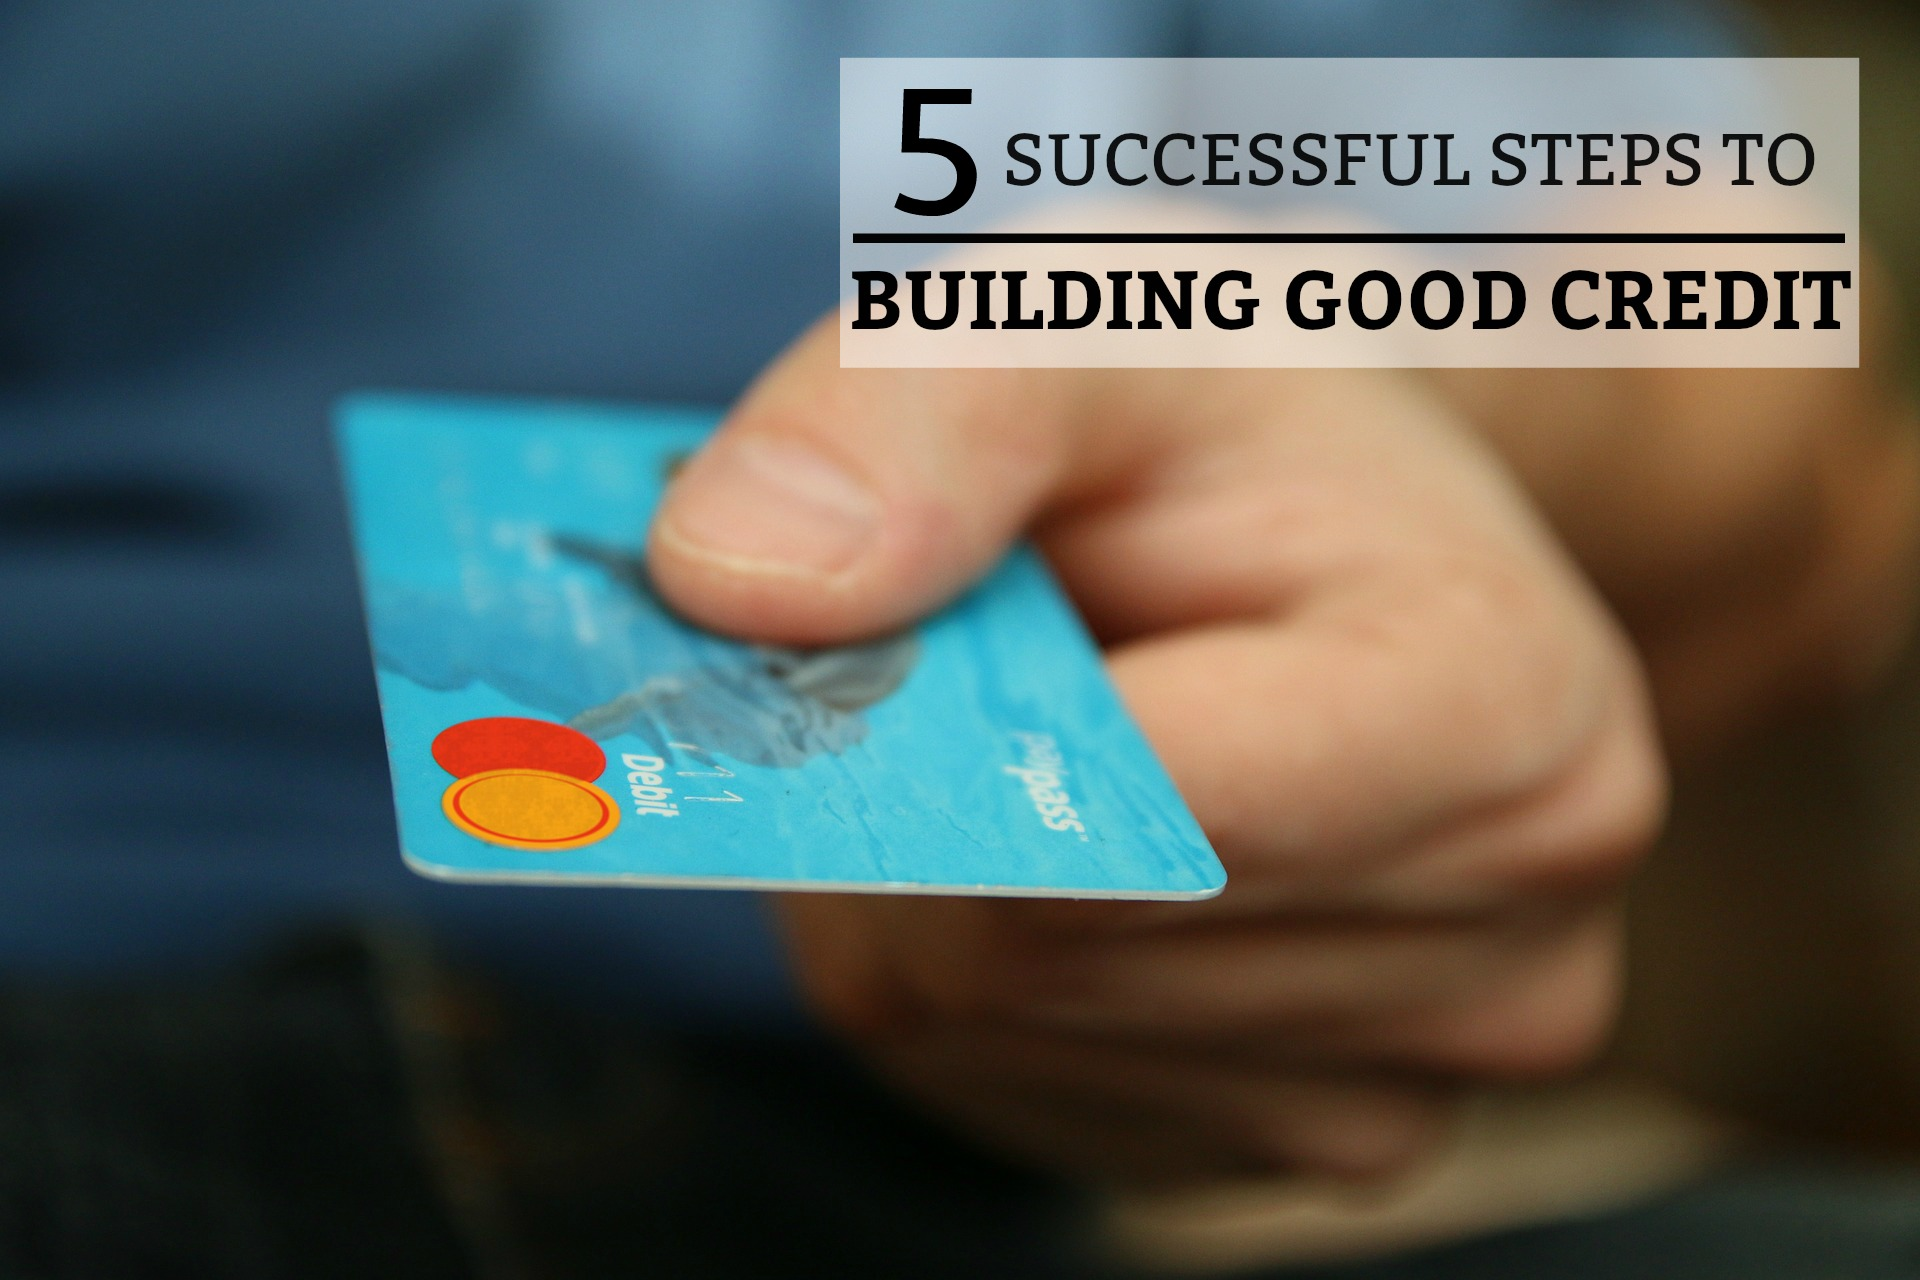 5 Successful Steps to Building Good Credit - a step-by-step guide on how to build credit and raise your credit score. www.tradingaverage.com